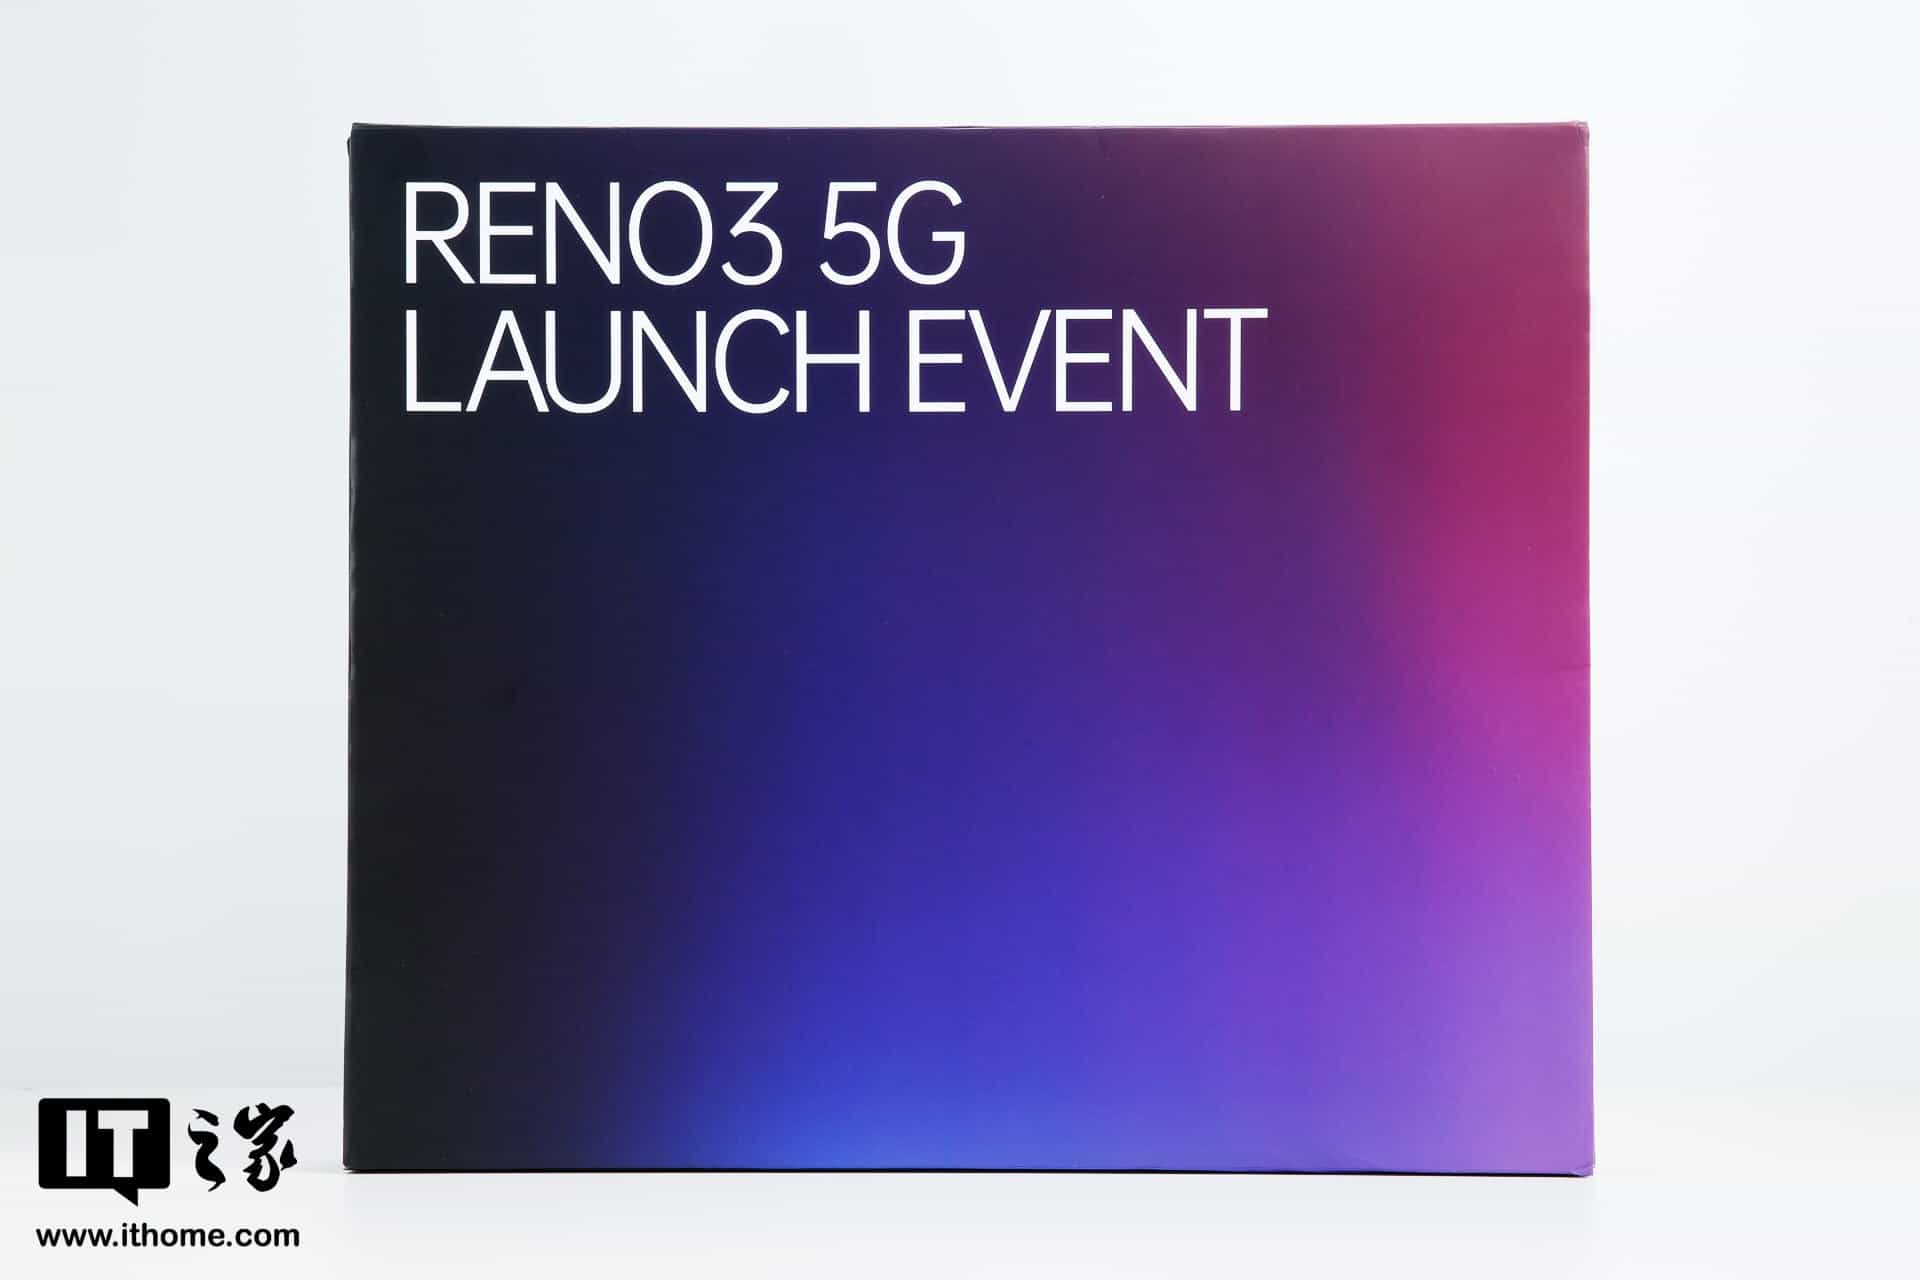 Oppo Reno 3 series 5G phones will be released on December 26